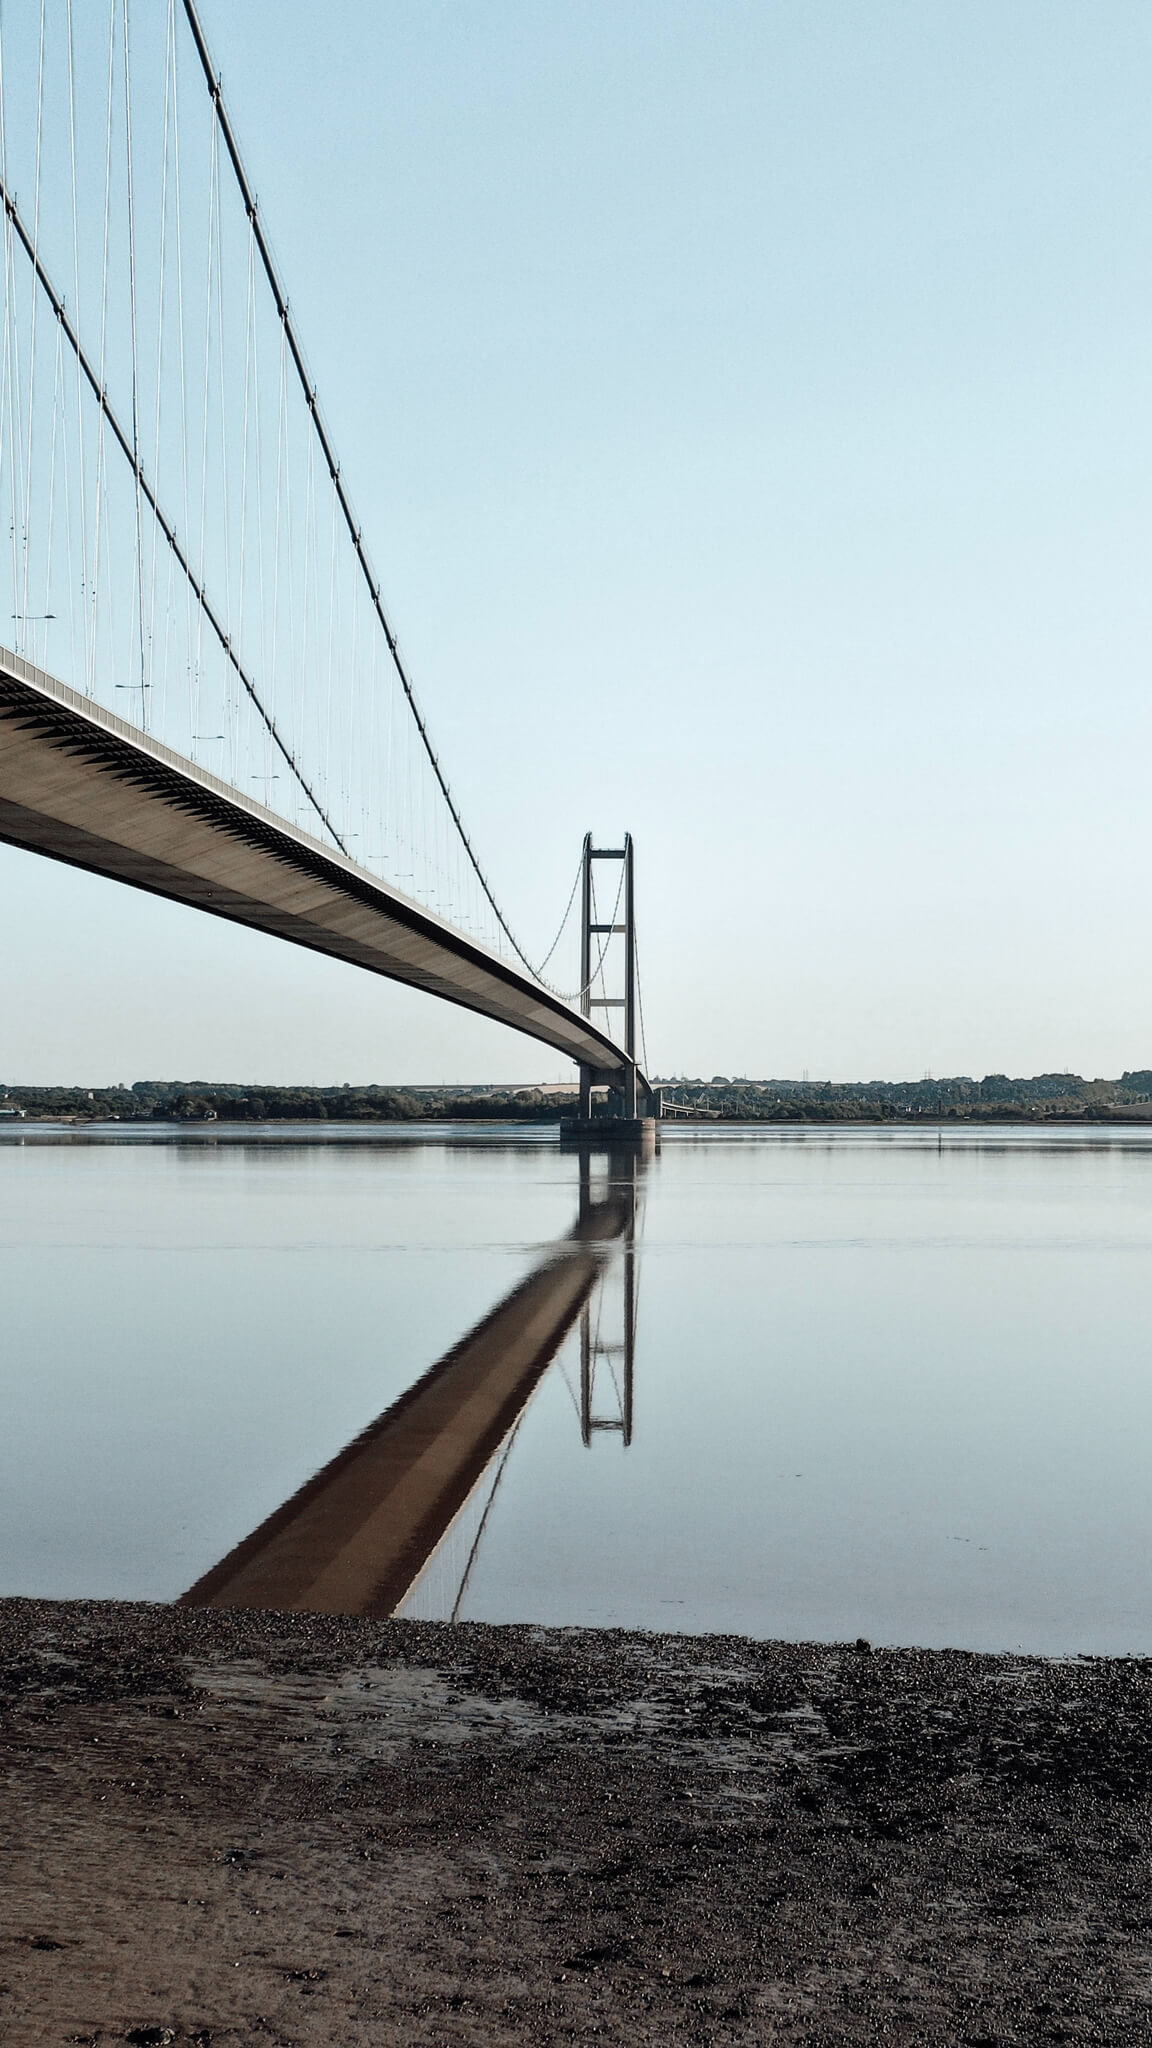 Remote Control Explores the Humber Through Photography